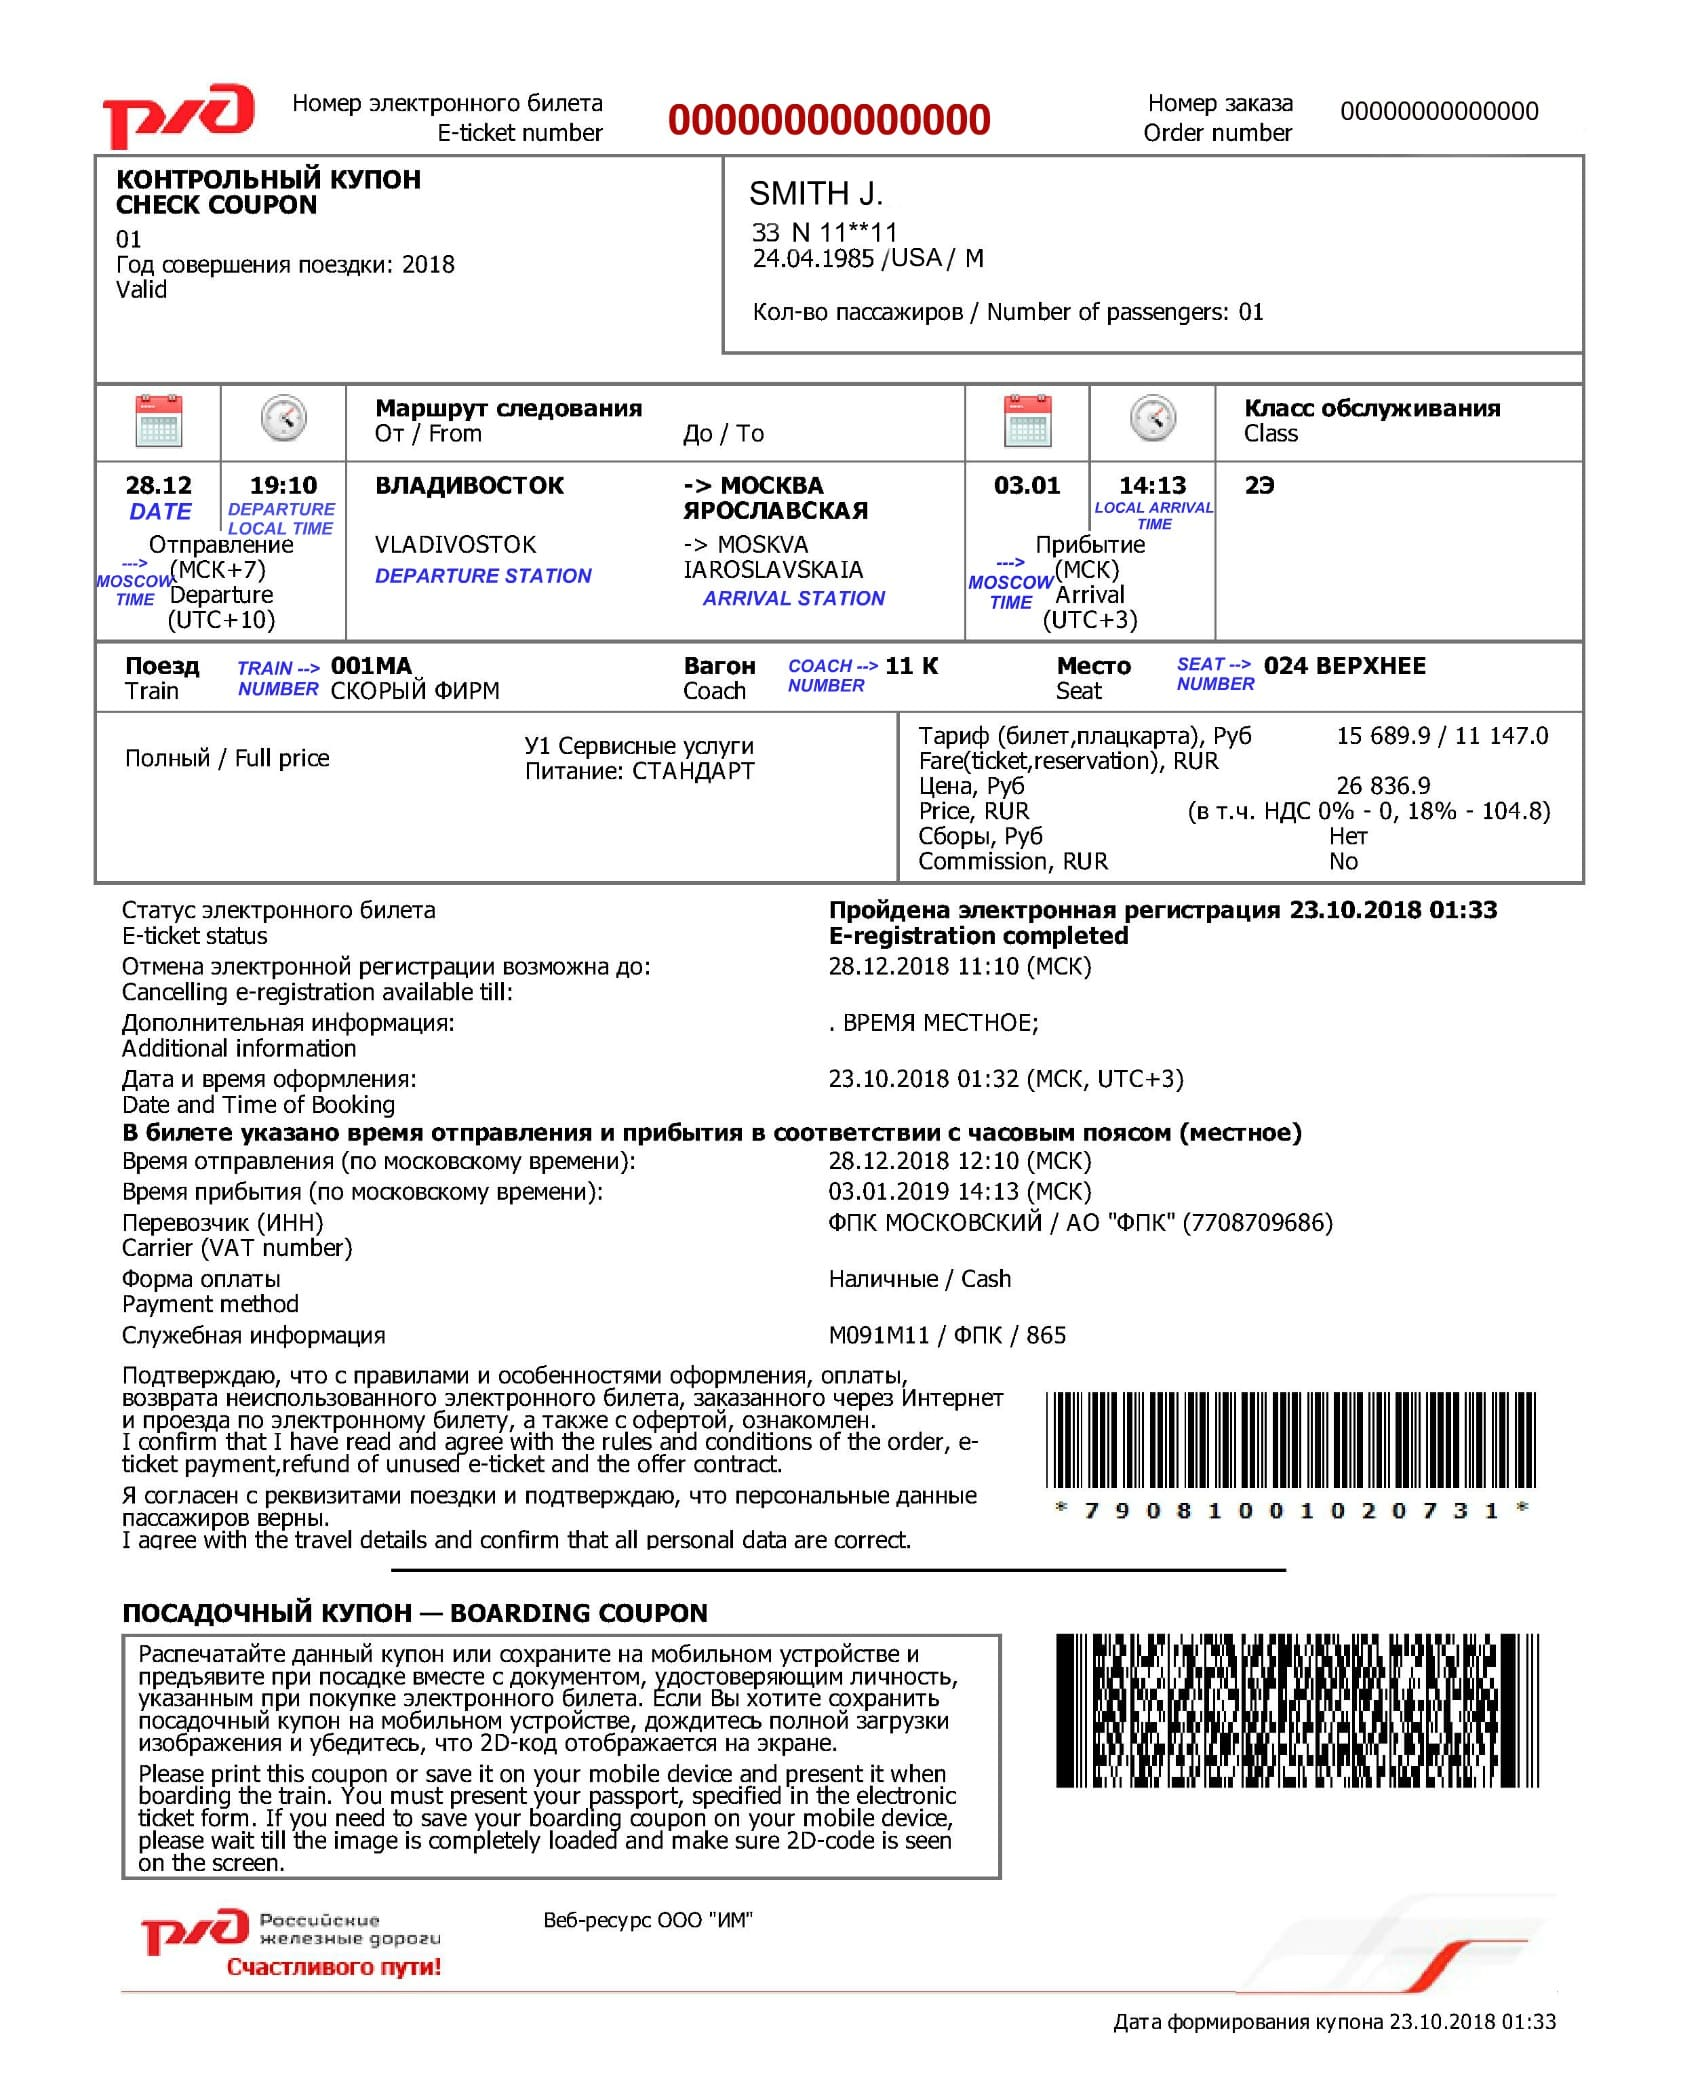 SAMPLE RUSSIAN TRAIN TICKET